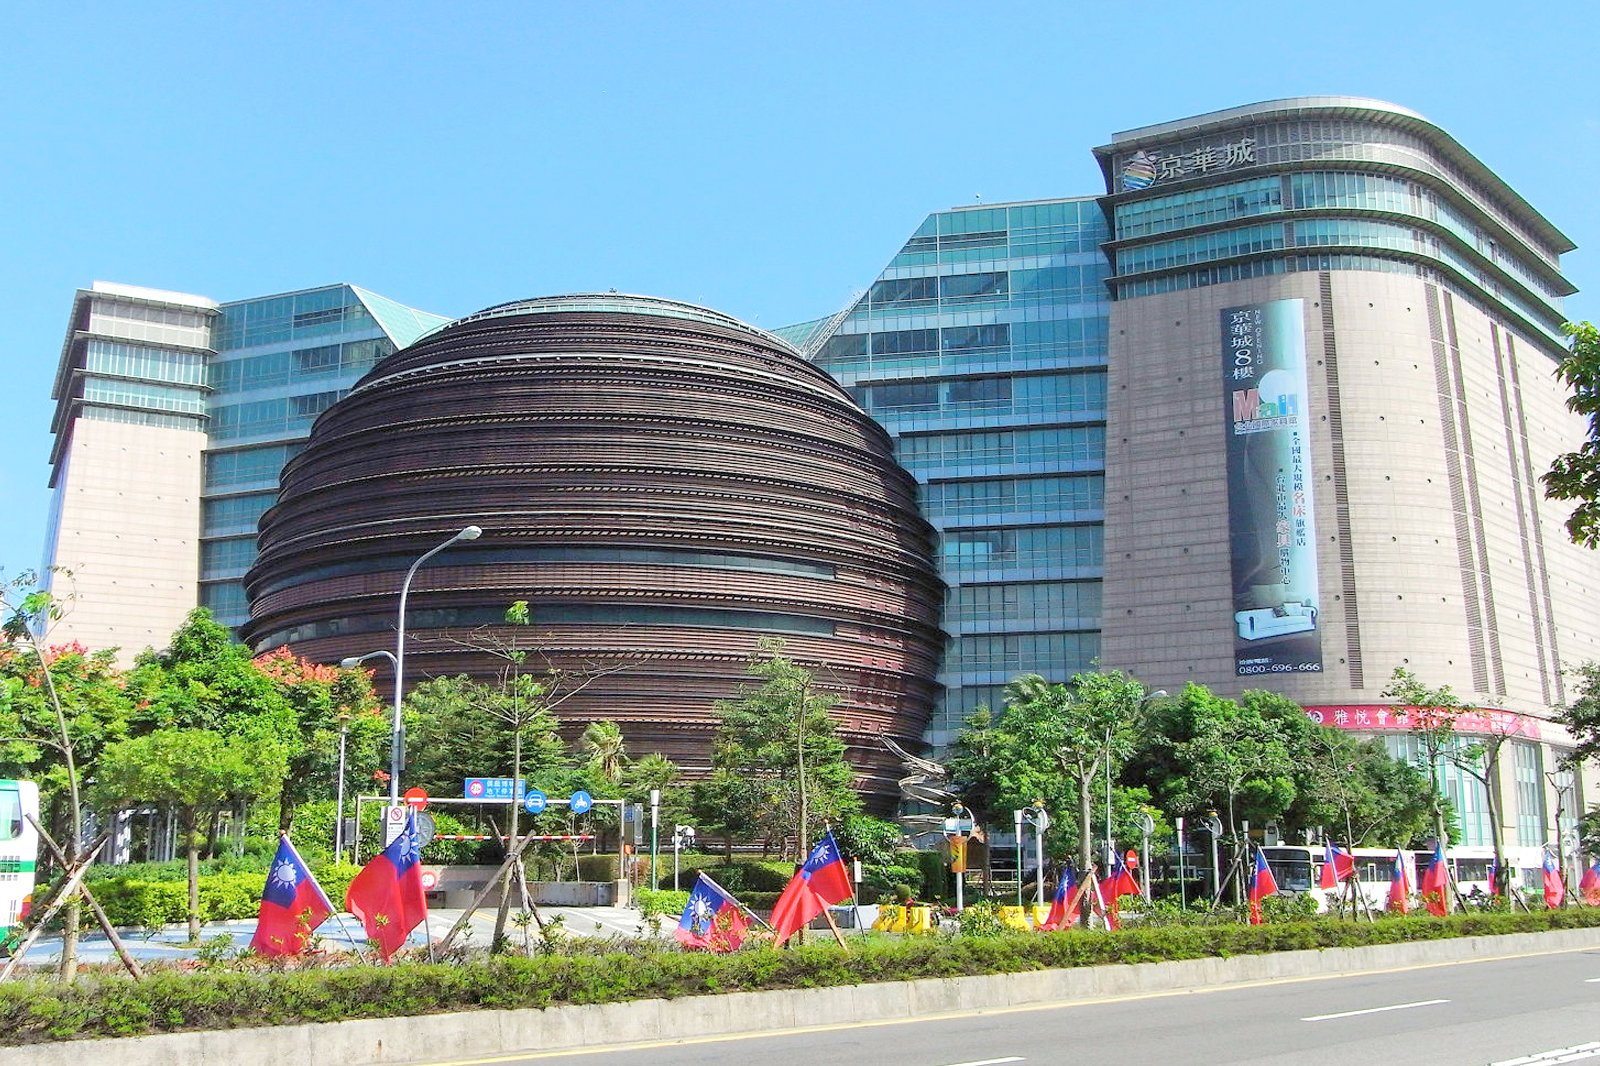 20 Best Places to Go Shopping in Taipei - What to Buy and